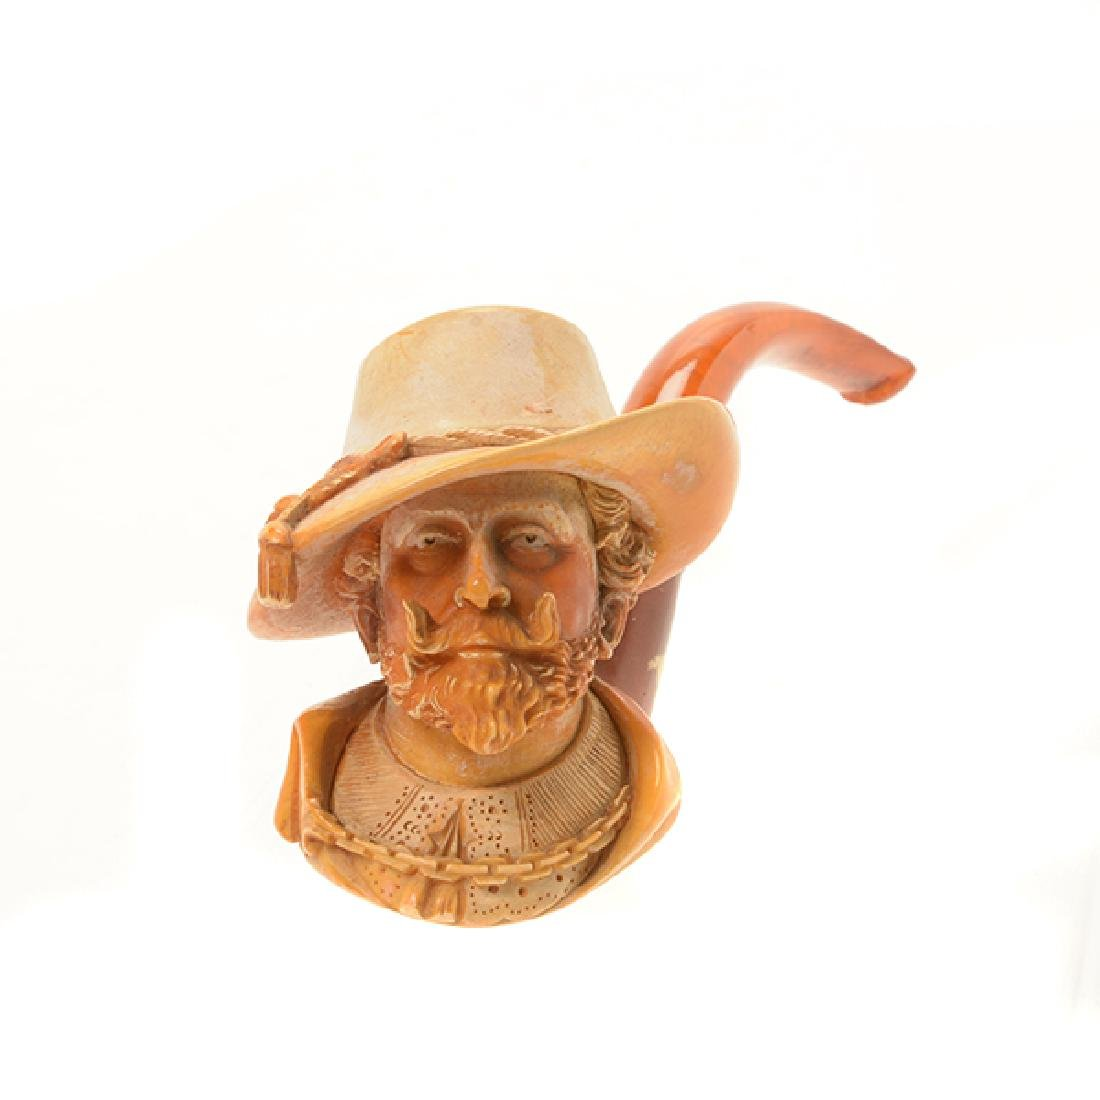 Meerschaum Cased Pipe of Sir Walter Raleigh - 2